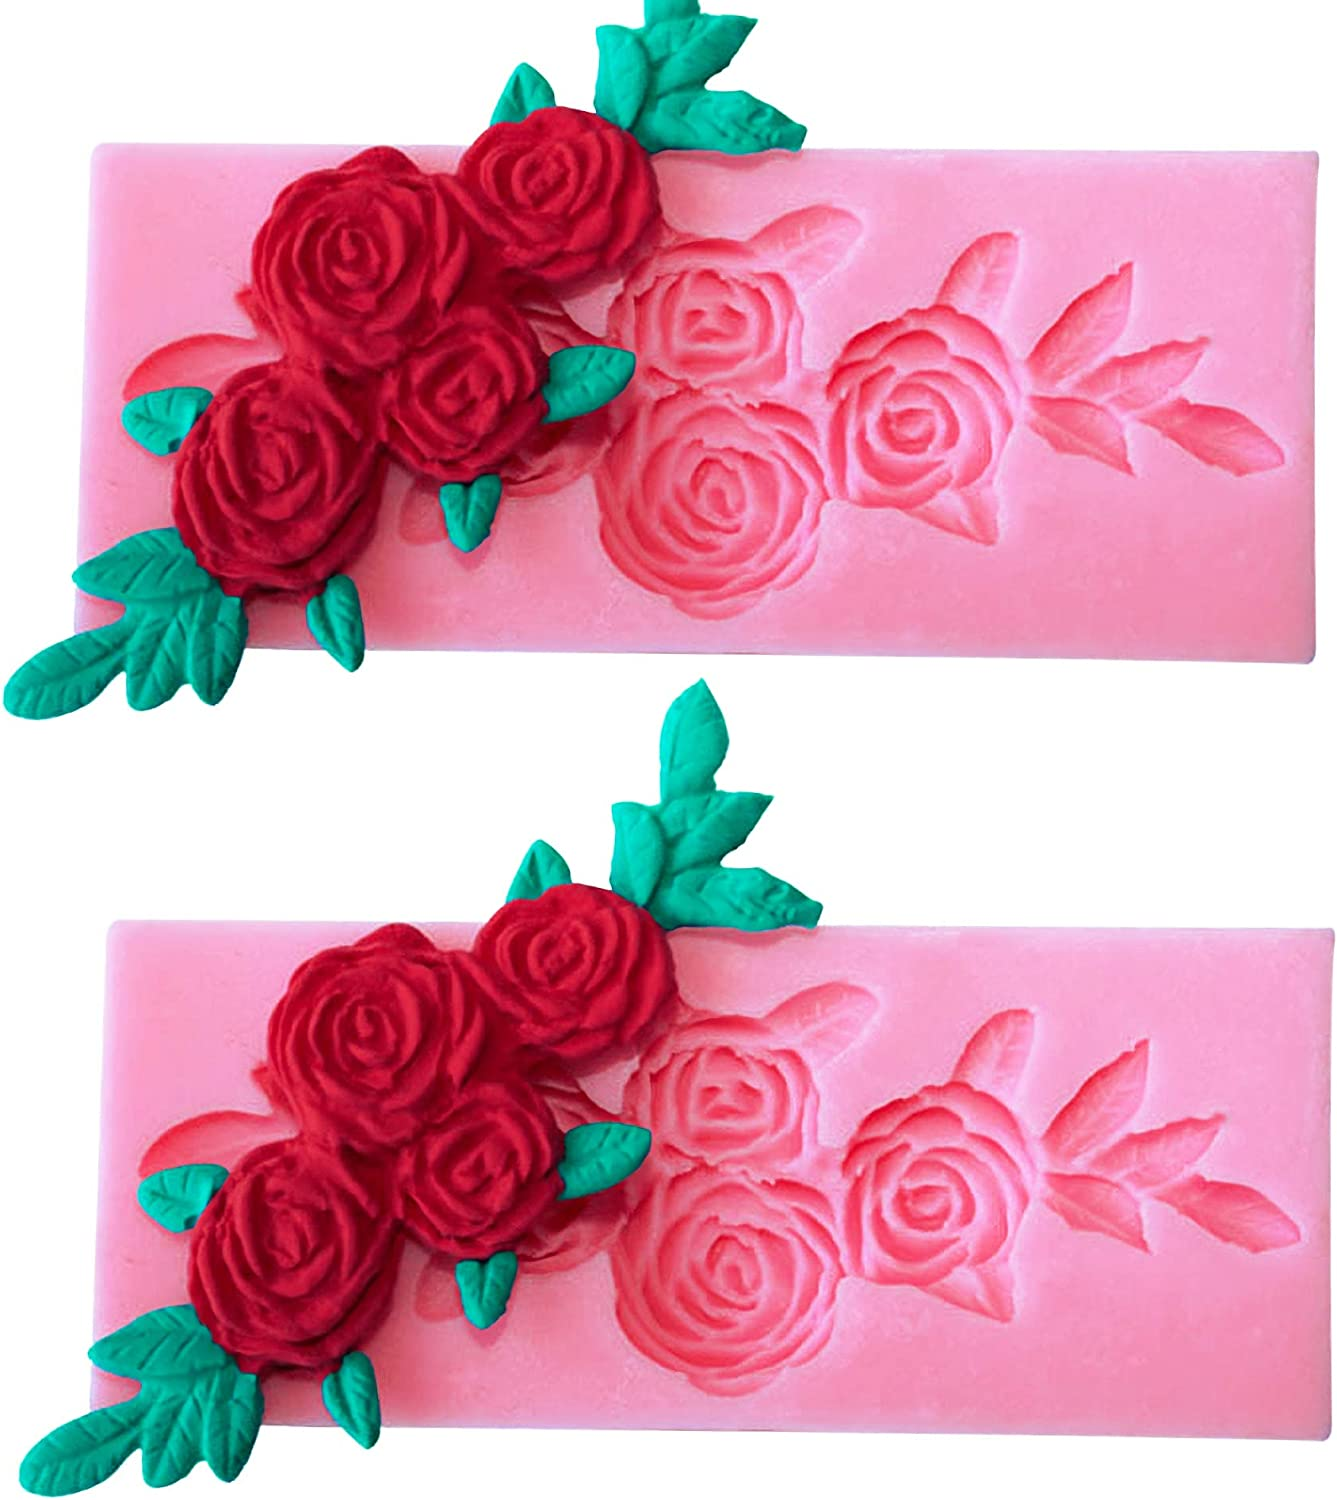 HengKe 2 Pieces Four Roses Candy Silicone Mold Limited price sale Fondant Ranking TOP17 Chocolate